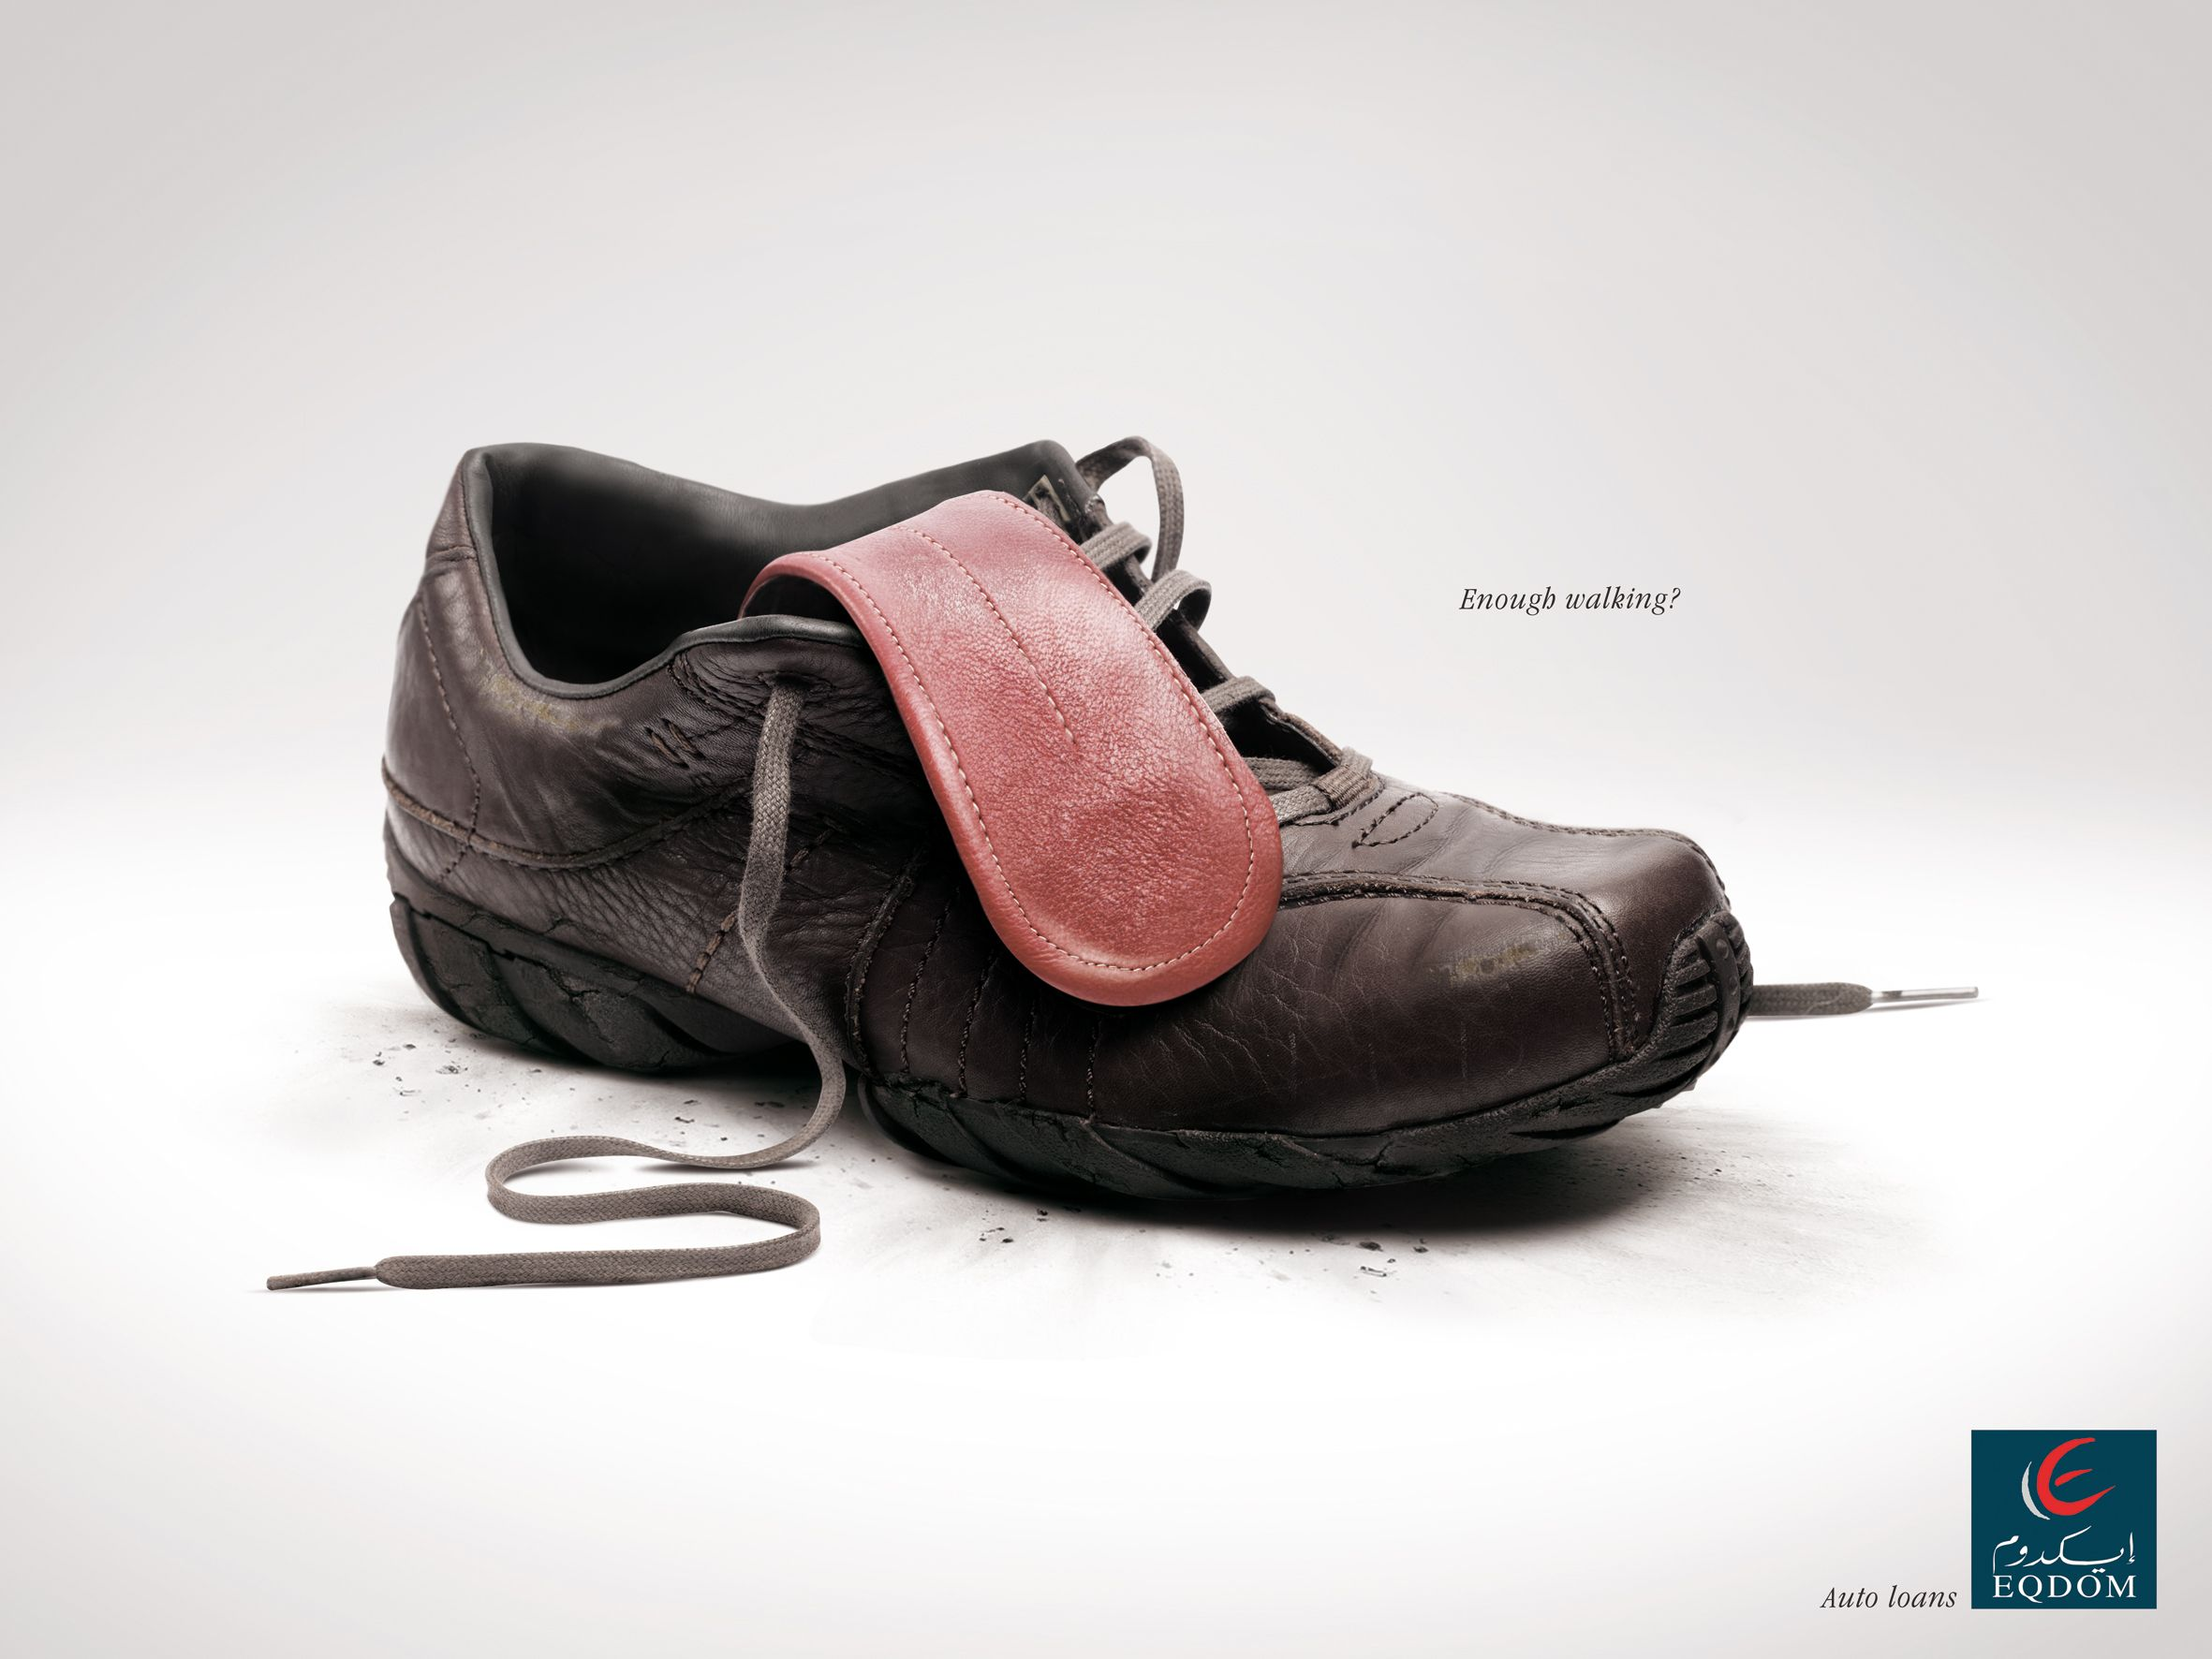 Enough walking? Eqdom auto loans.Advertising Agency: Klem Euro RSCG,  Casablanca,